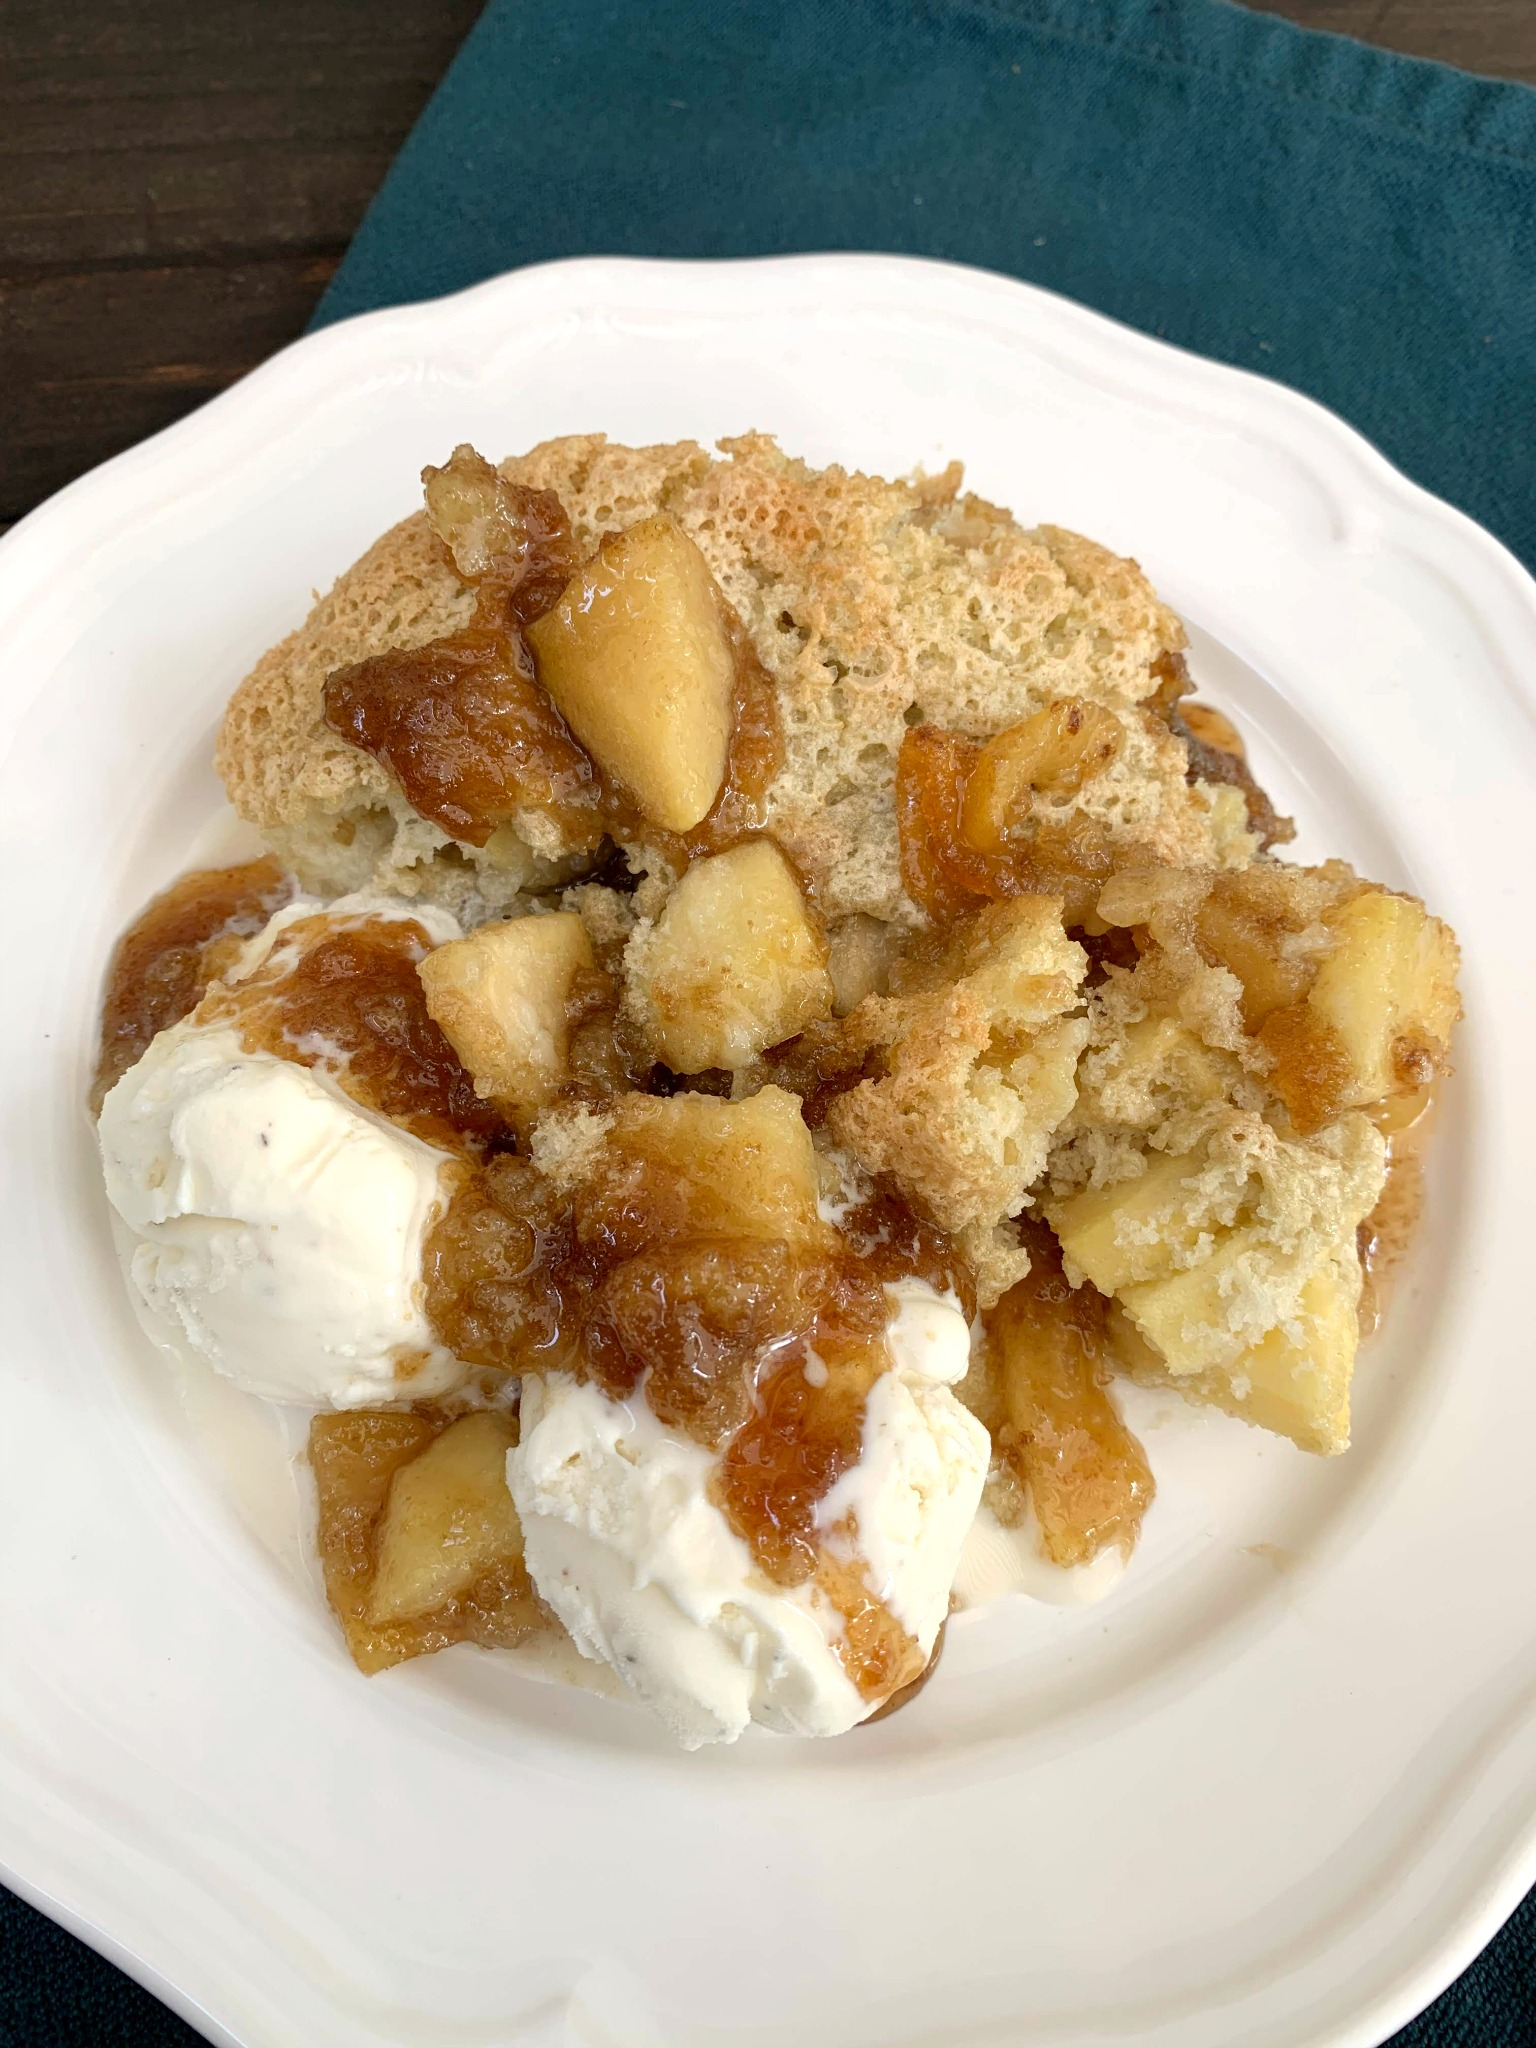 a serving of apple pudding cake on a white plate with two scoops of vanilla ice cream